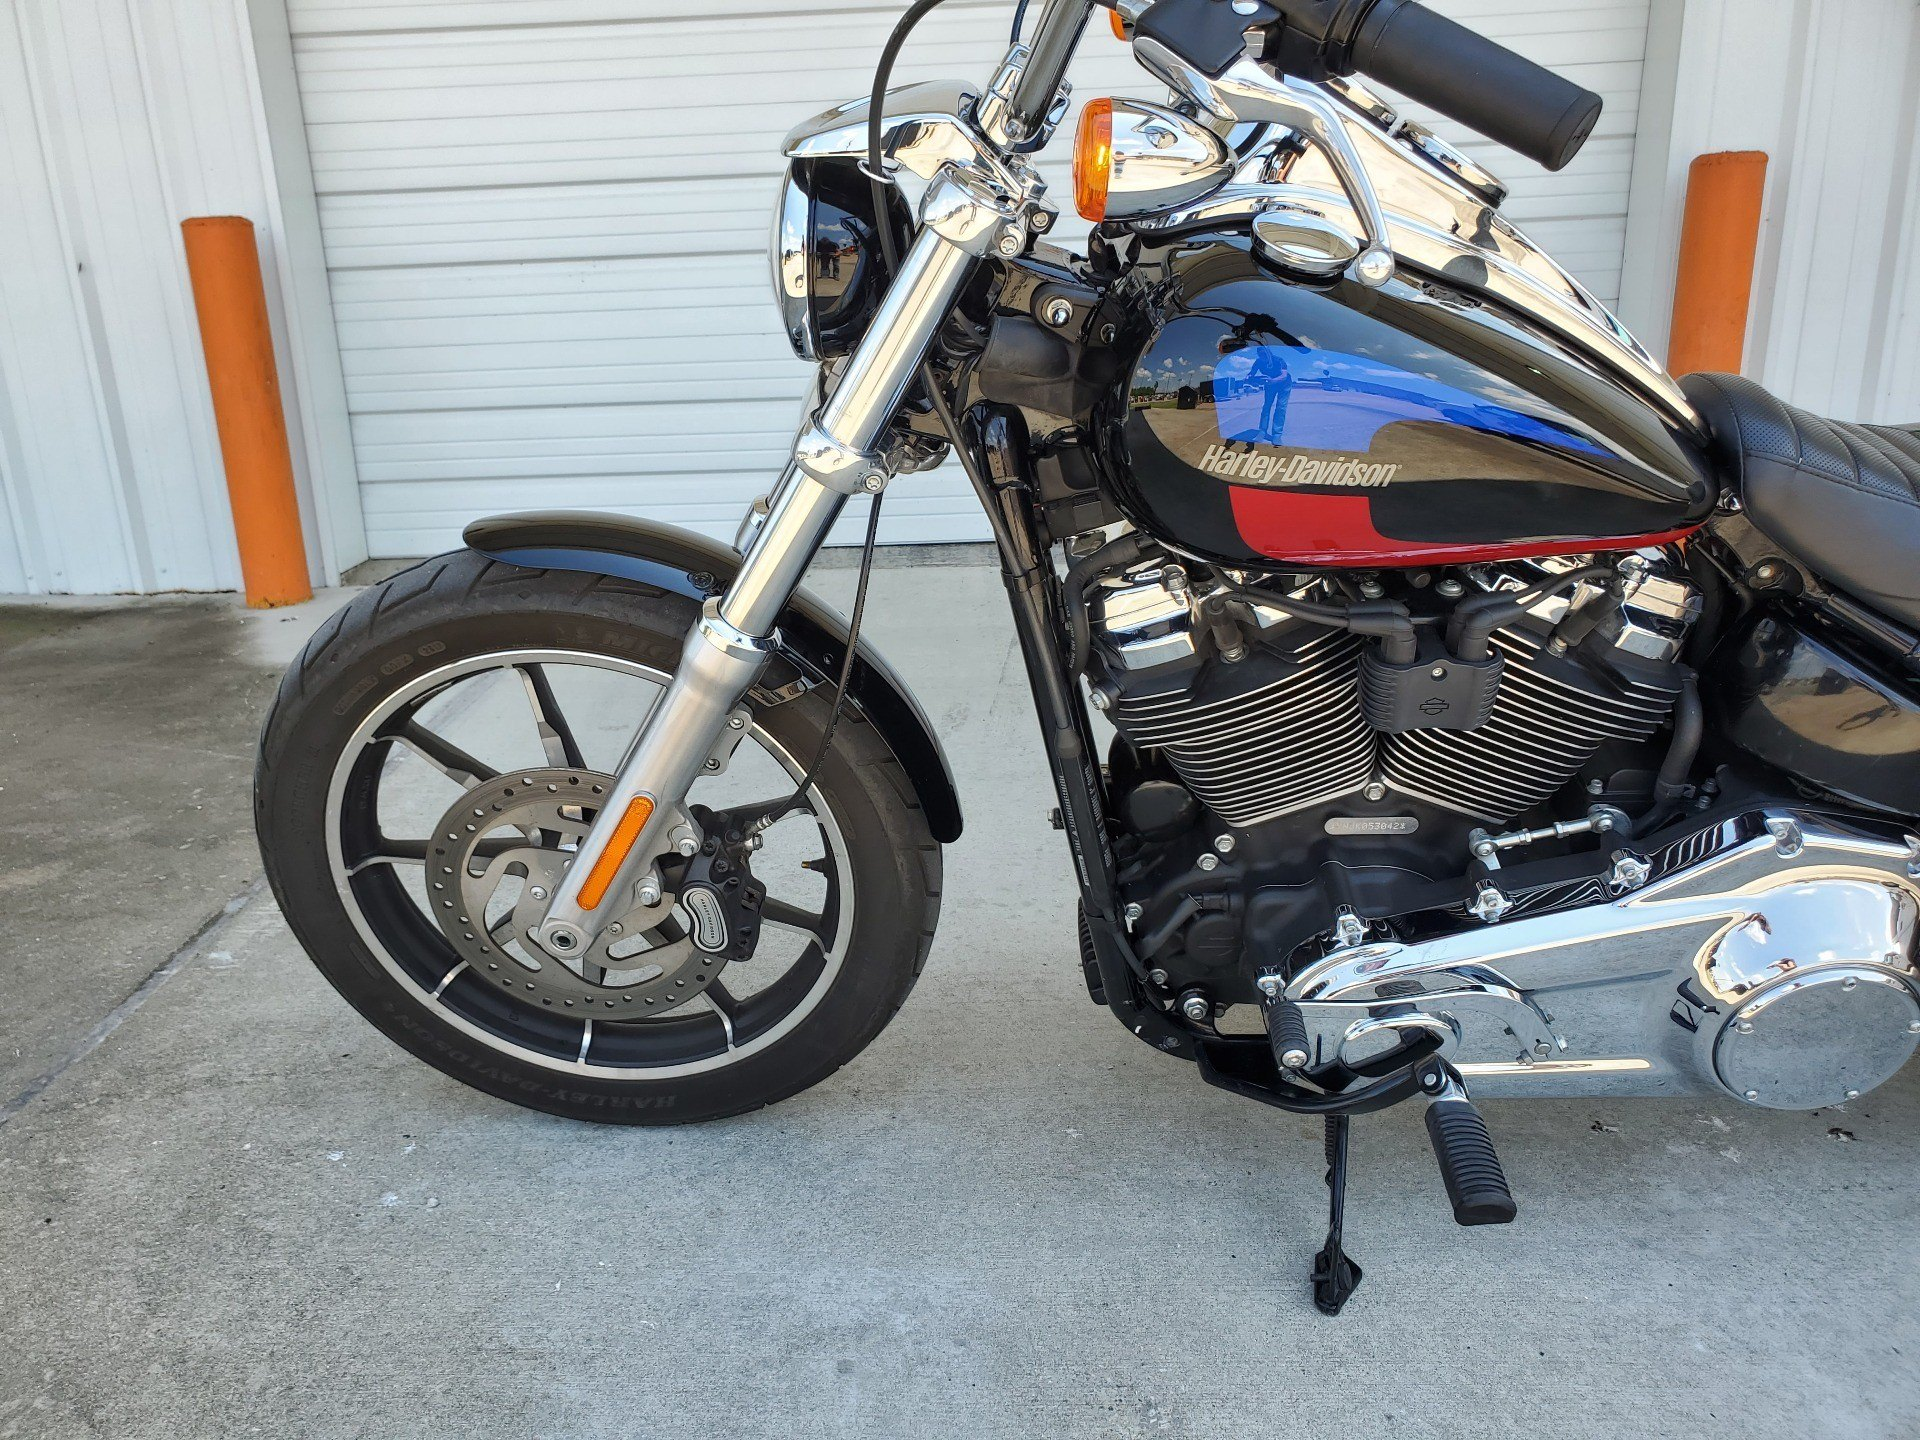 2019 Harley Low Rider for sale near me - Photo 6